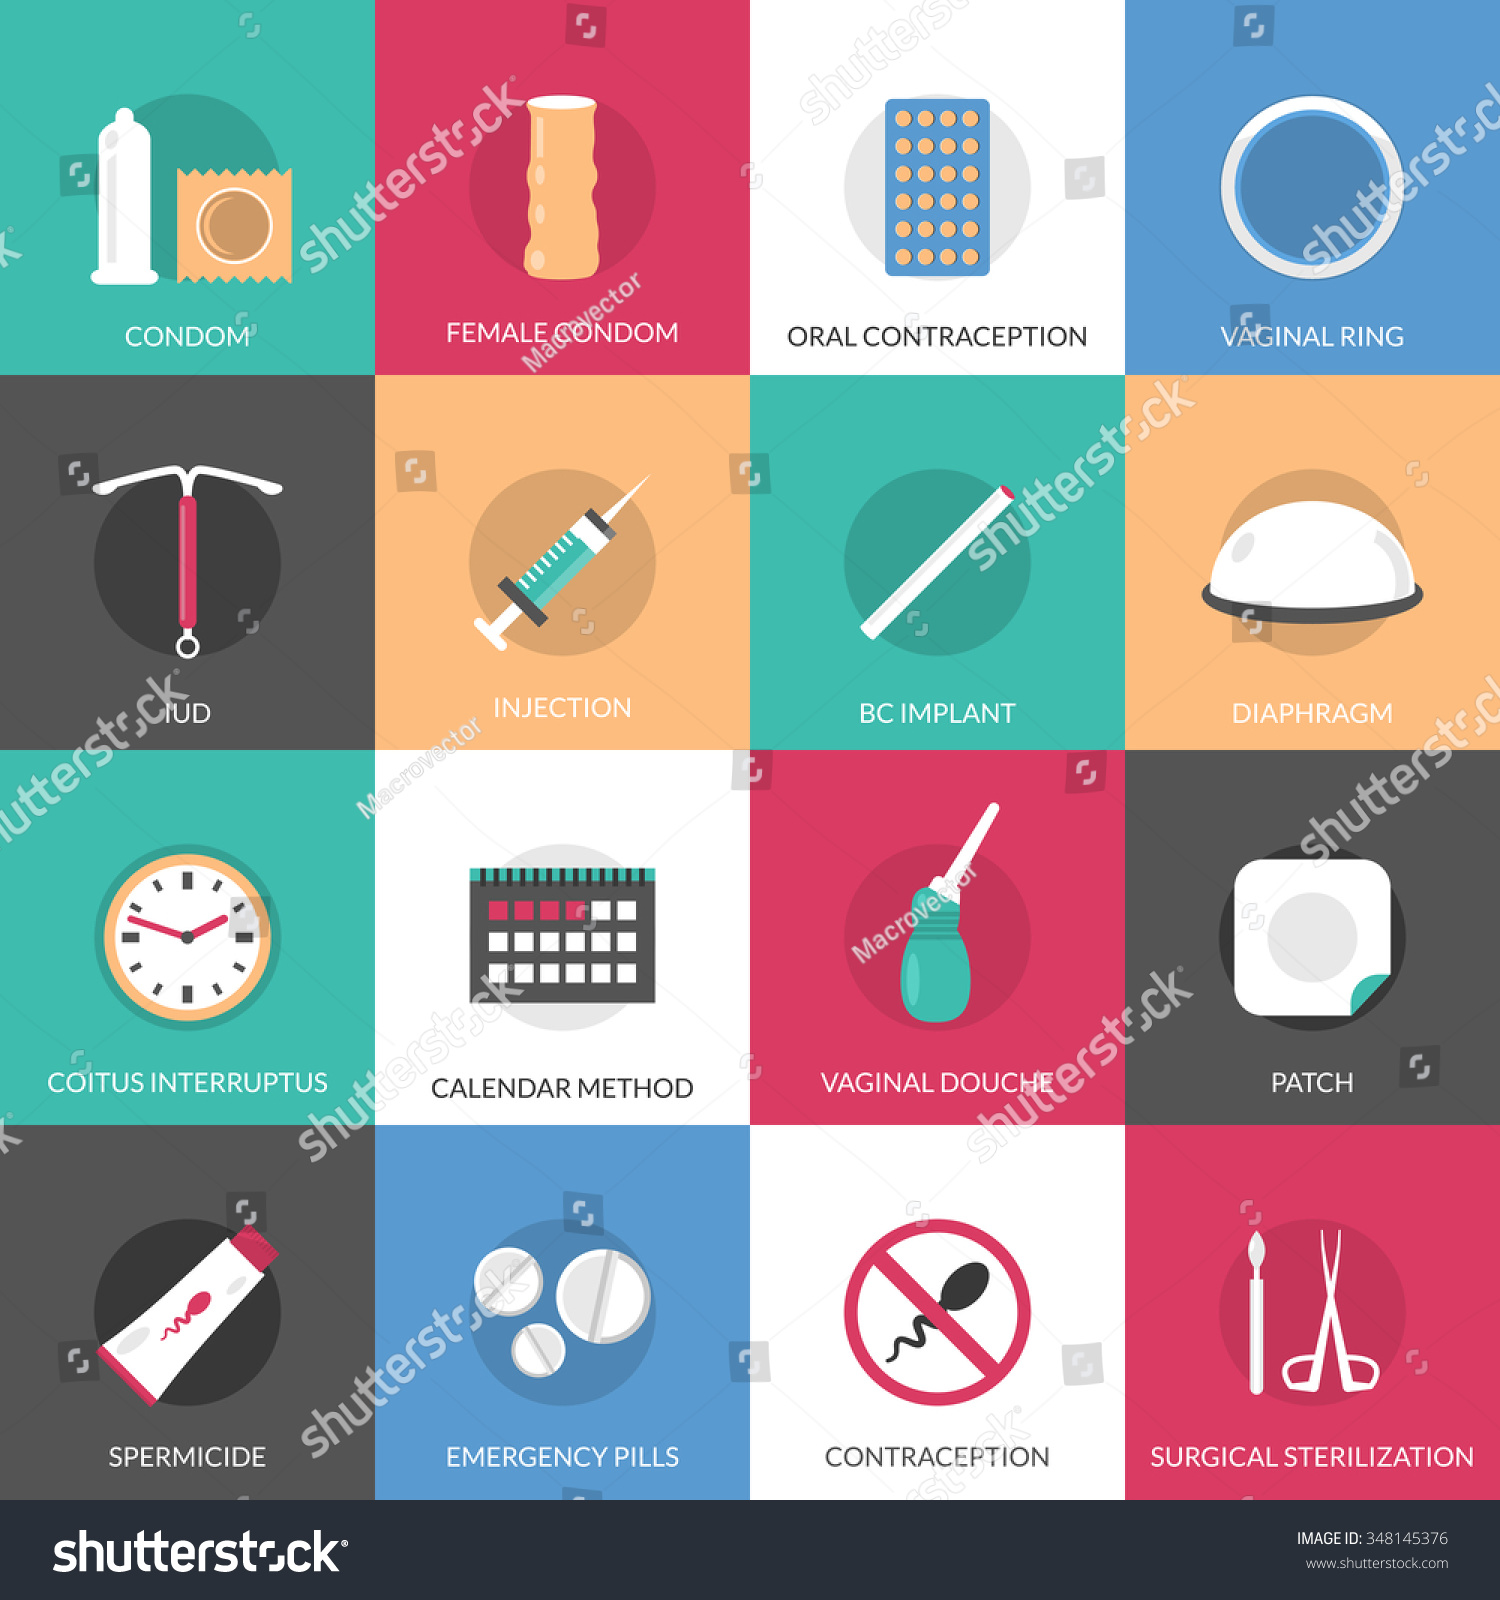 Calendar Method Illustration : Contraception methods square icons set calendar stock